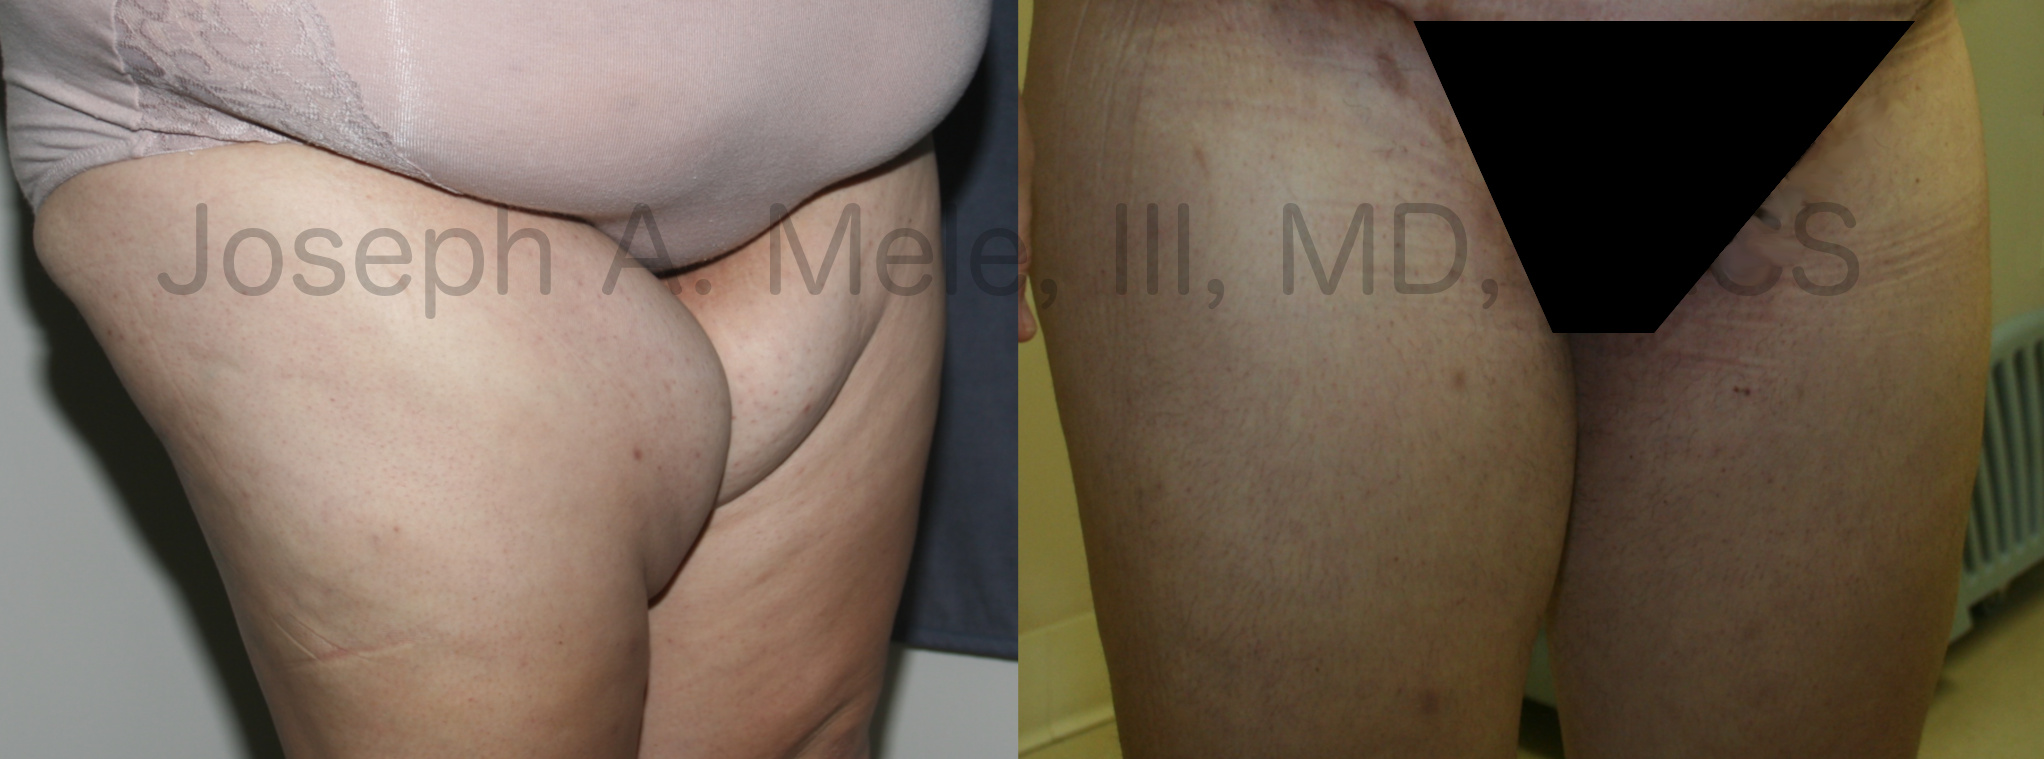 Thigh lift before and after pictures (thighplasty)